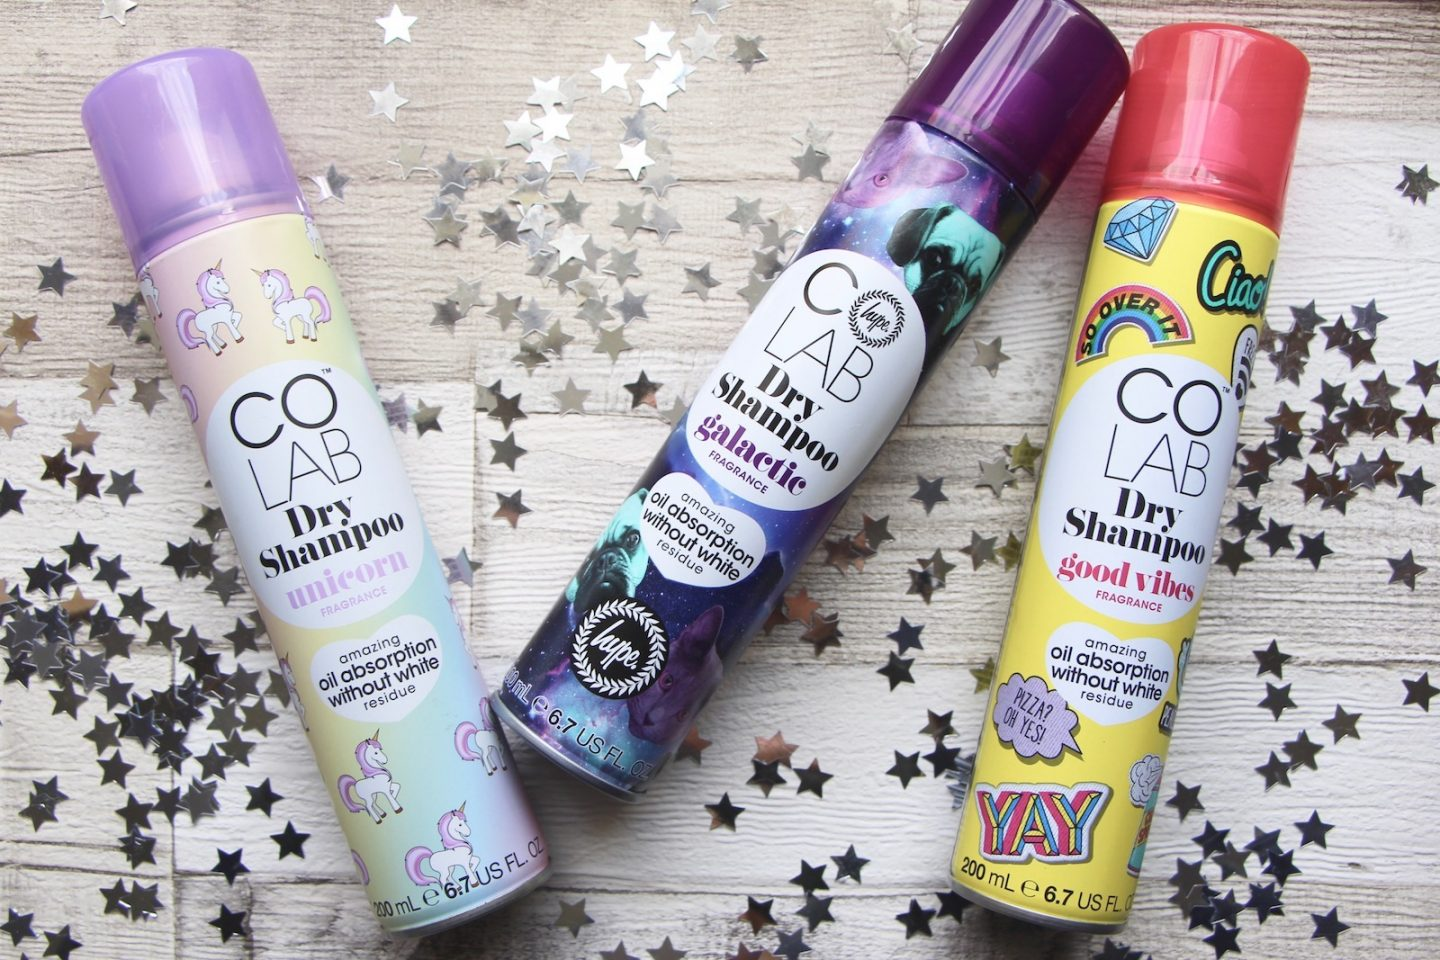 My Star Haircare Buy – now at Boots!